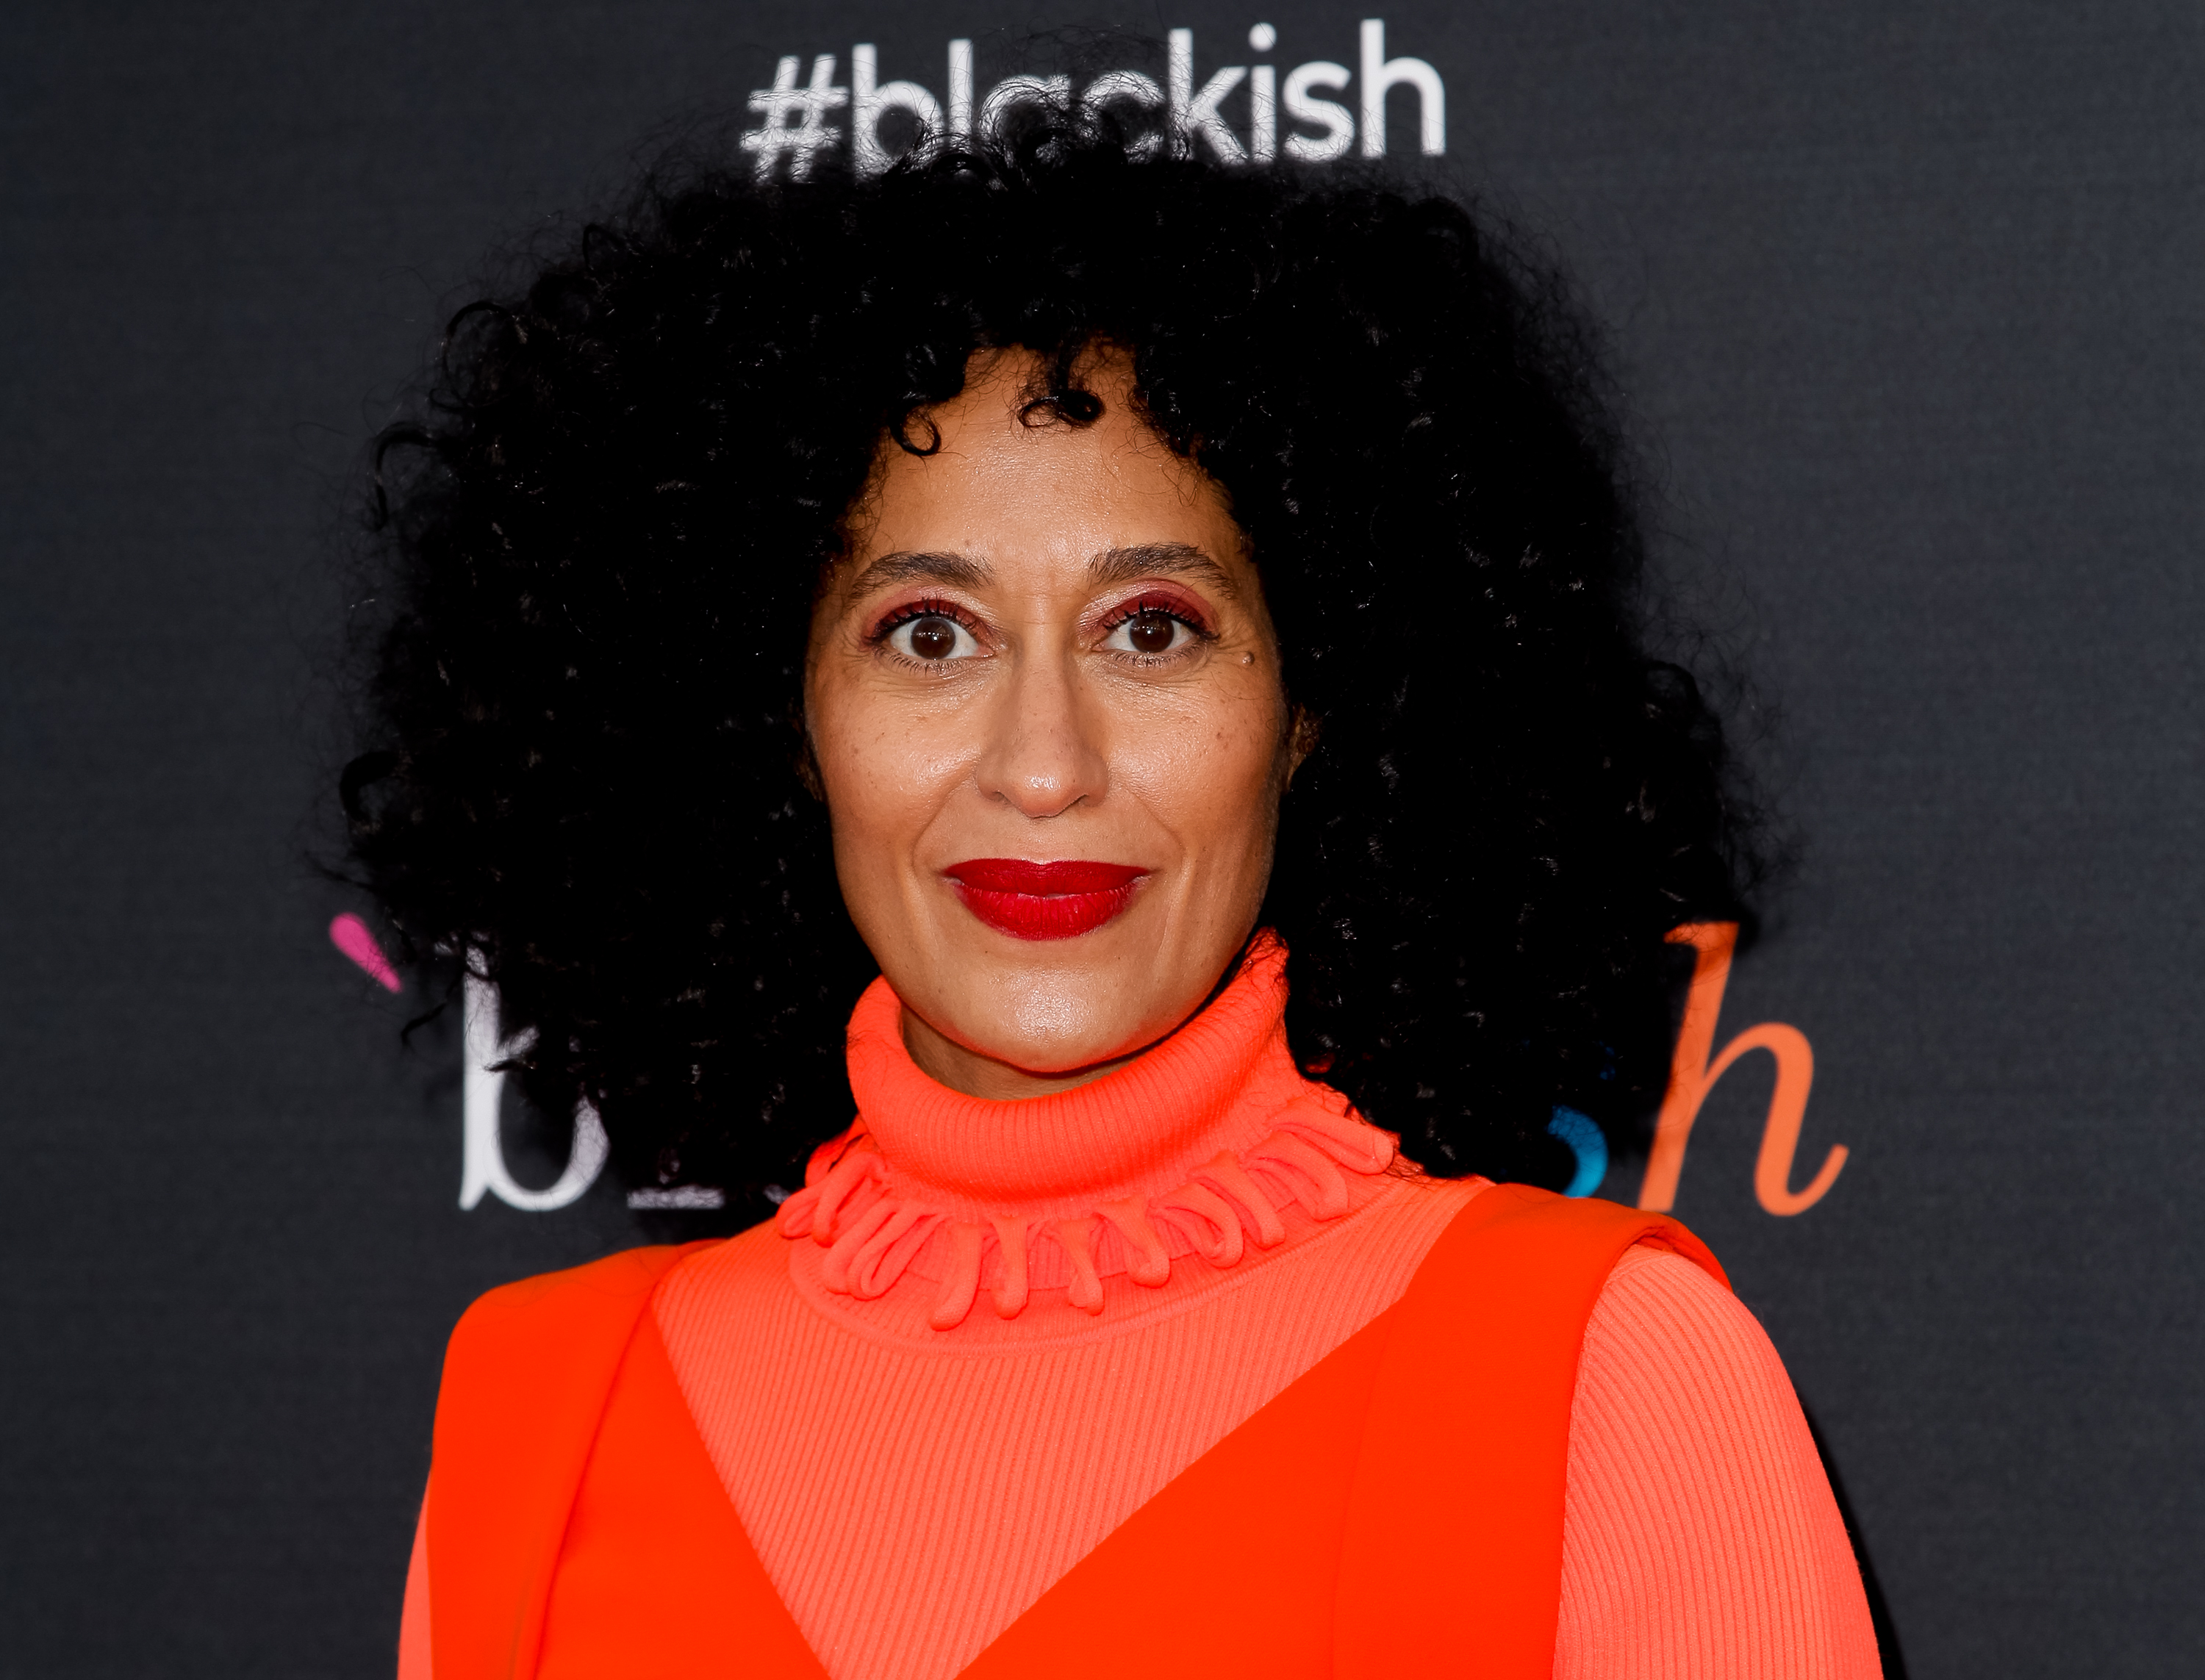 LOS ANGELES, CA - APRIL 12:  Tracee Ellis Ross attends ABC's 'Black-ish' FYC Event at Television Academy on April 12, 2017 in Los Angeles, California.  (Photo by Tibrina Hobson/Getty Images)